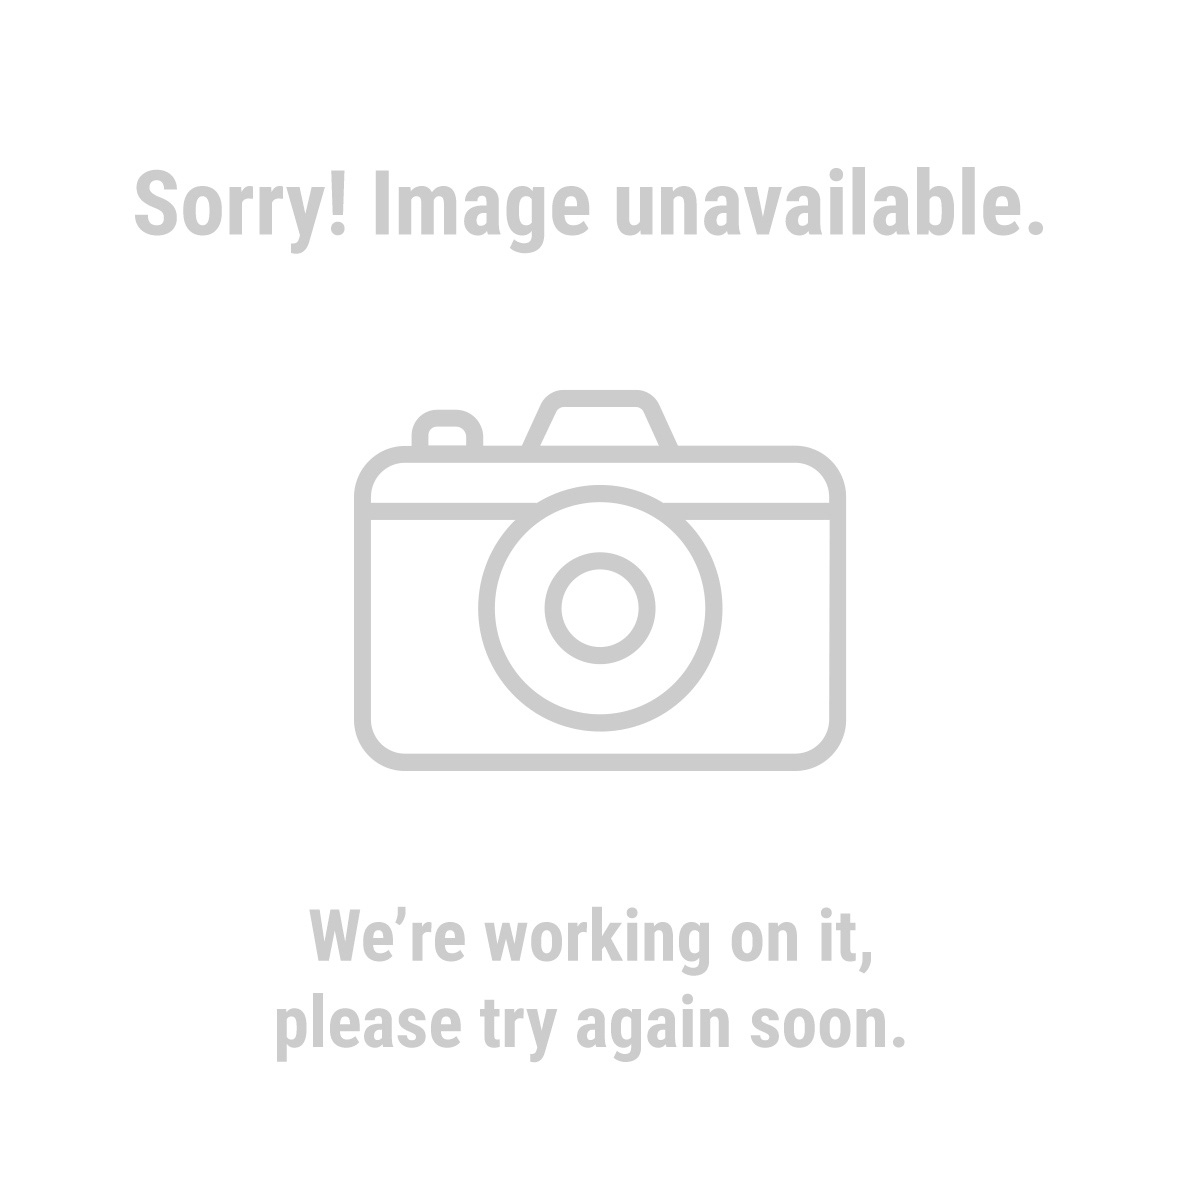 "Lifetime Carbide 93895 7-1/4"", 40 Tooth Carbide Tipped Circular Saw Blade with Titanium Nitride Coating"